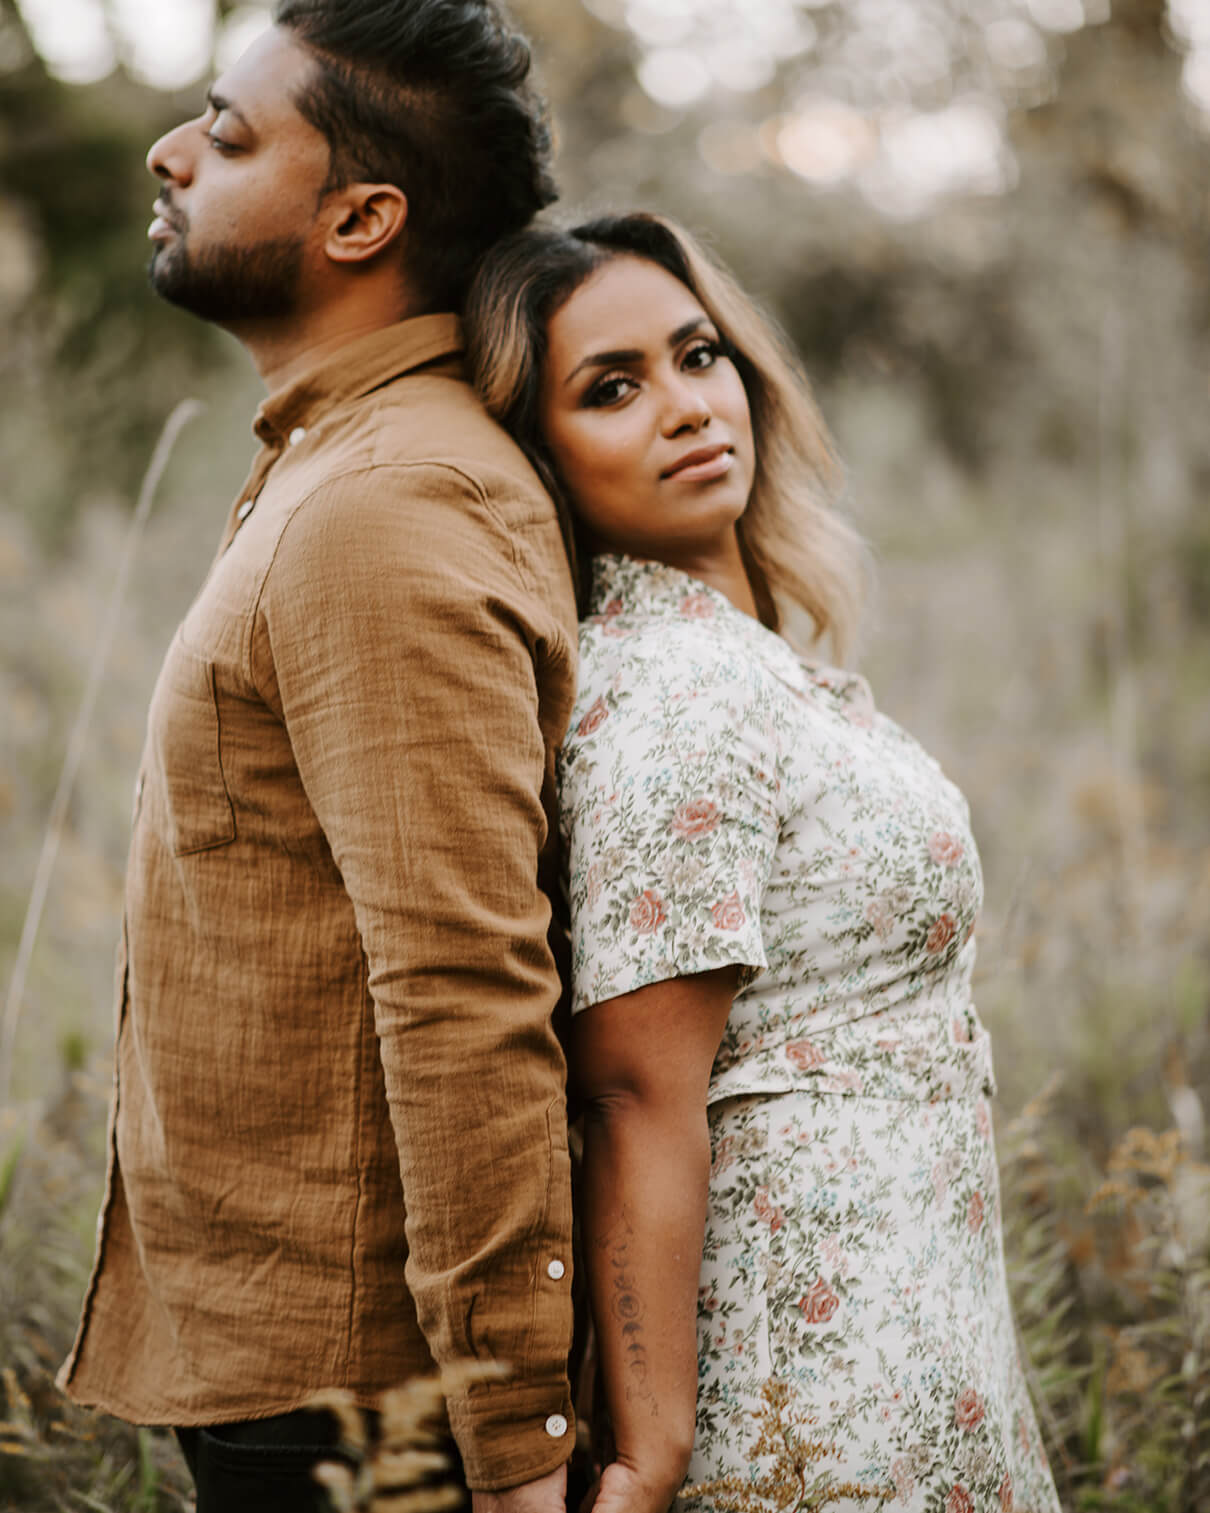 Beautiful Indian couple standing back to back | Marriage Counseling and Couples Therapy in Southlake, TX | marriage counseling southlake tx | therapy in Southlake, TX | Colleyville 76034 | Grapevine 75019 |  Keller 76262 |  Flower Mound 75022 | Dallas 75261